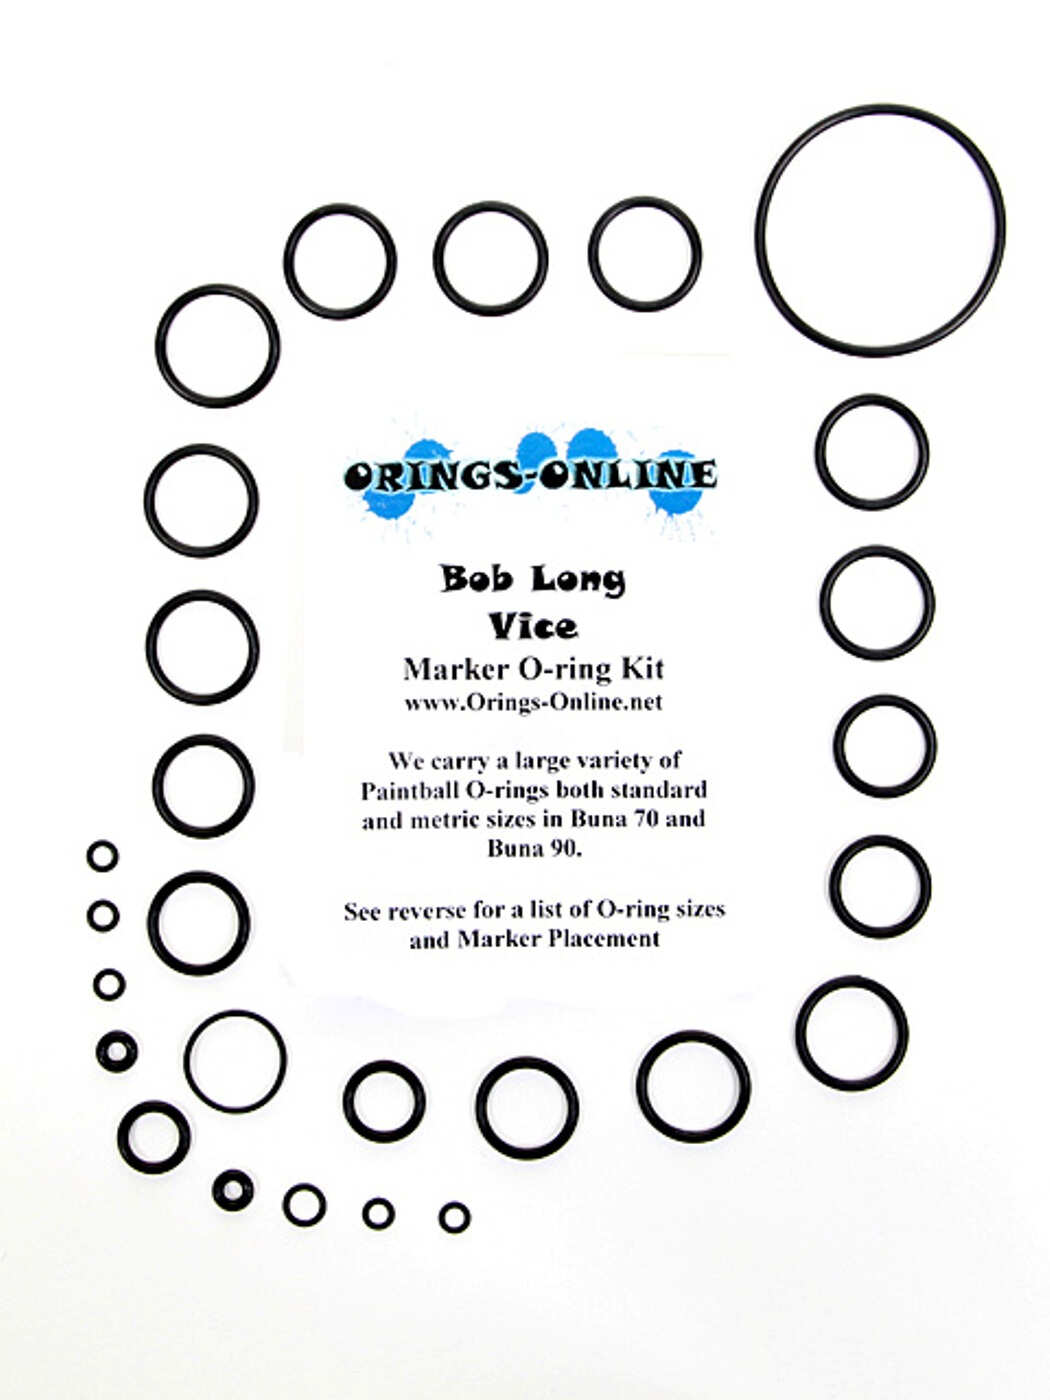 Bob Long Vice Marker O-ring Kit